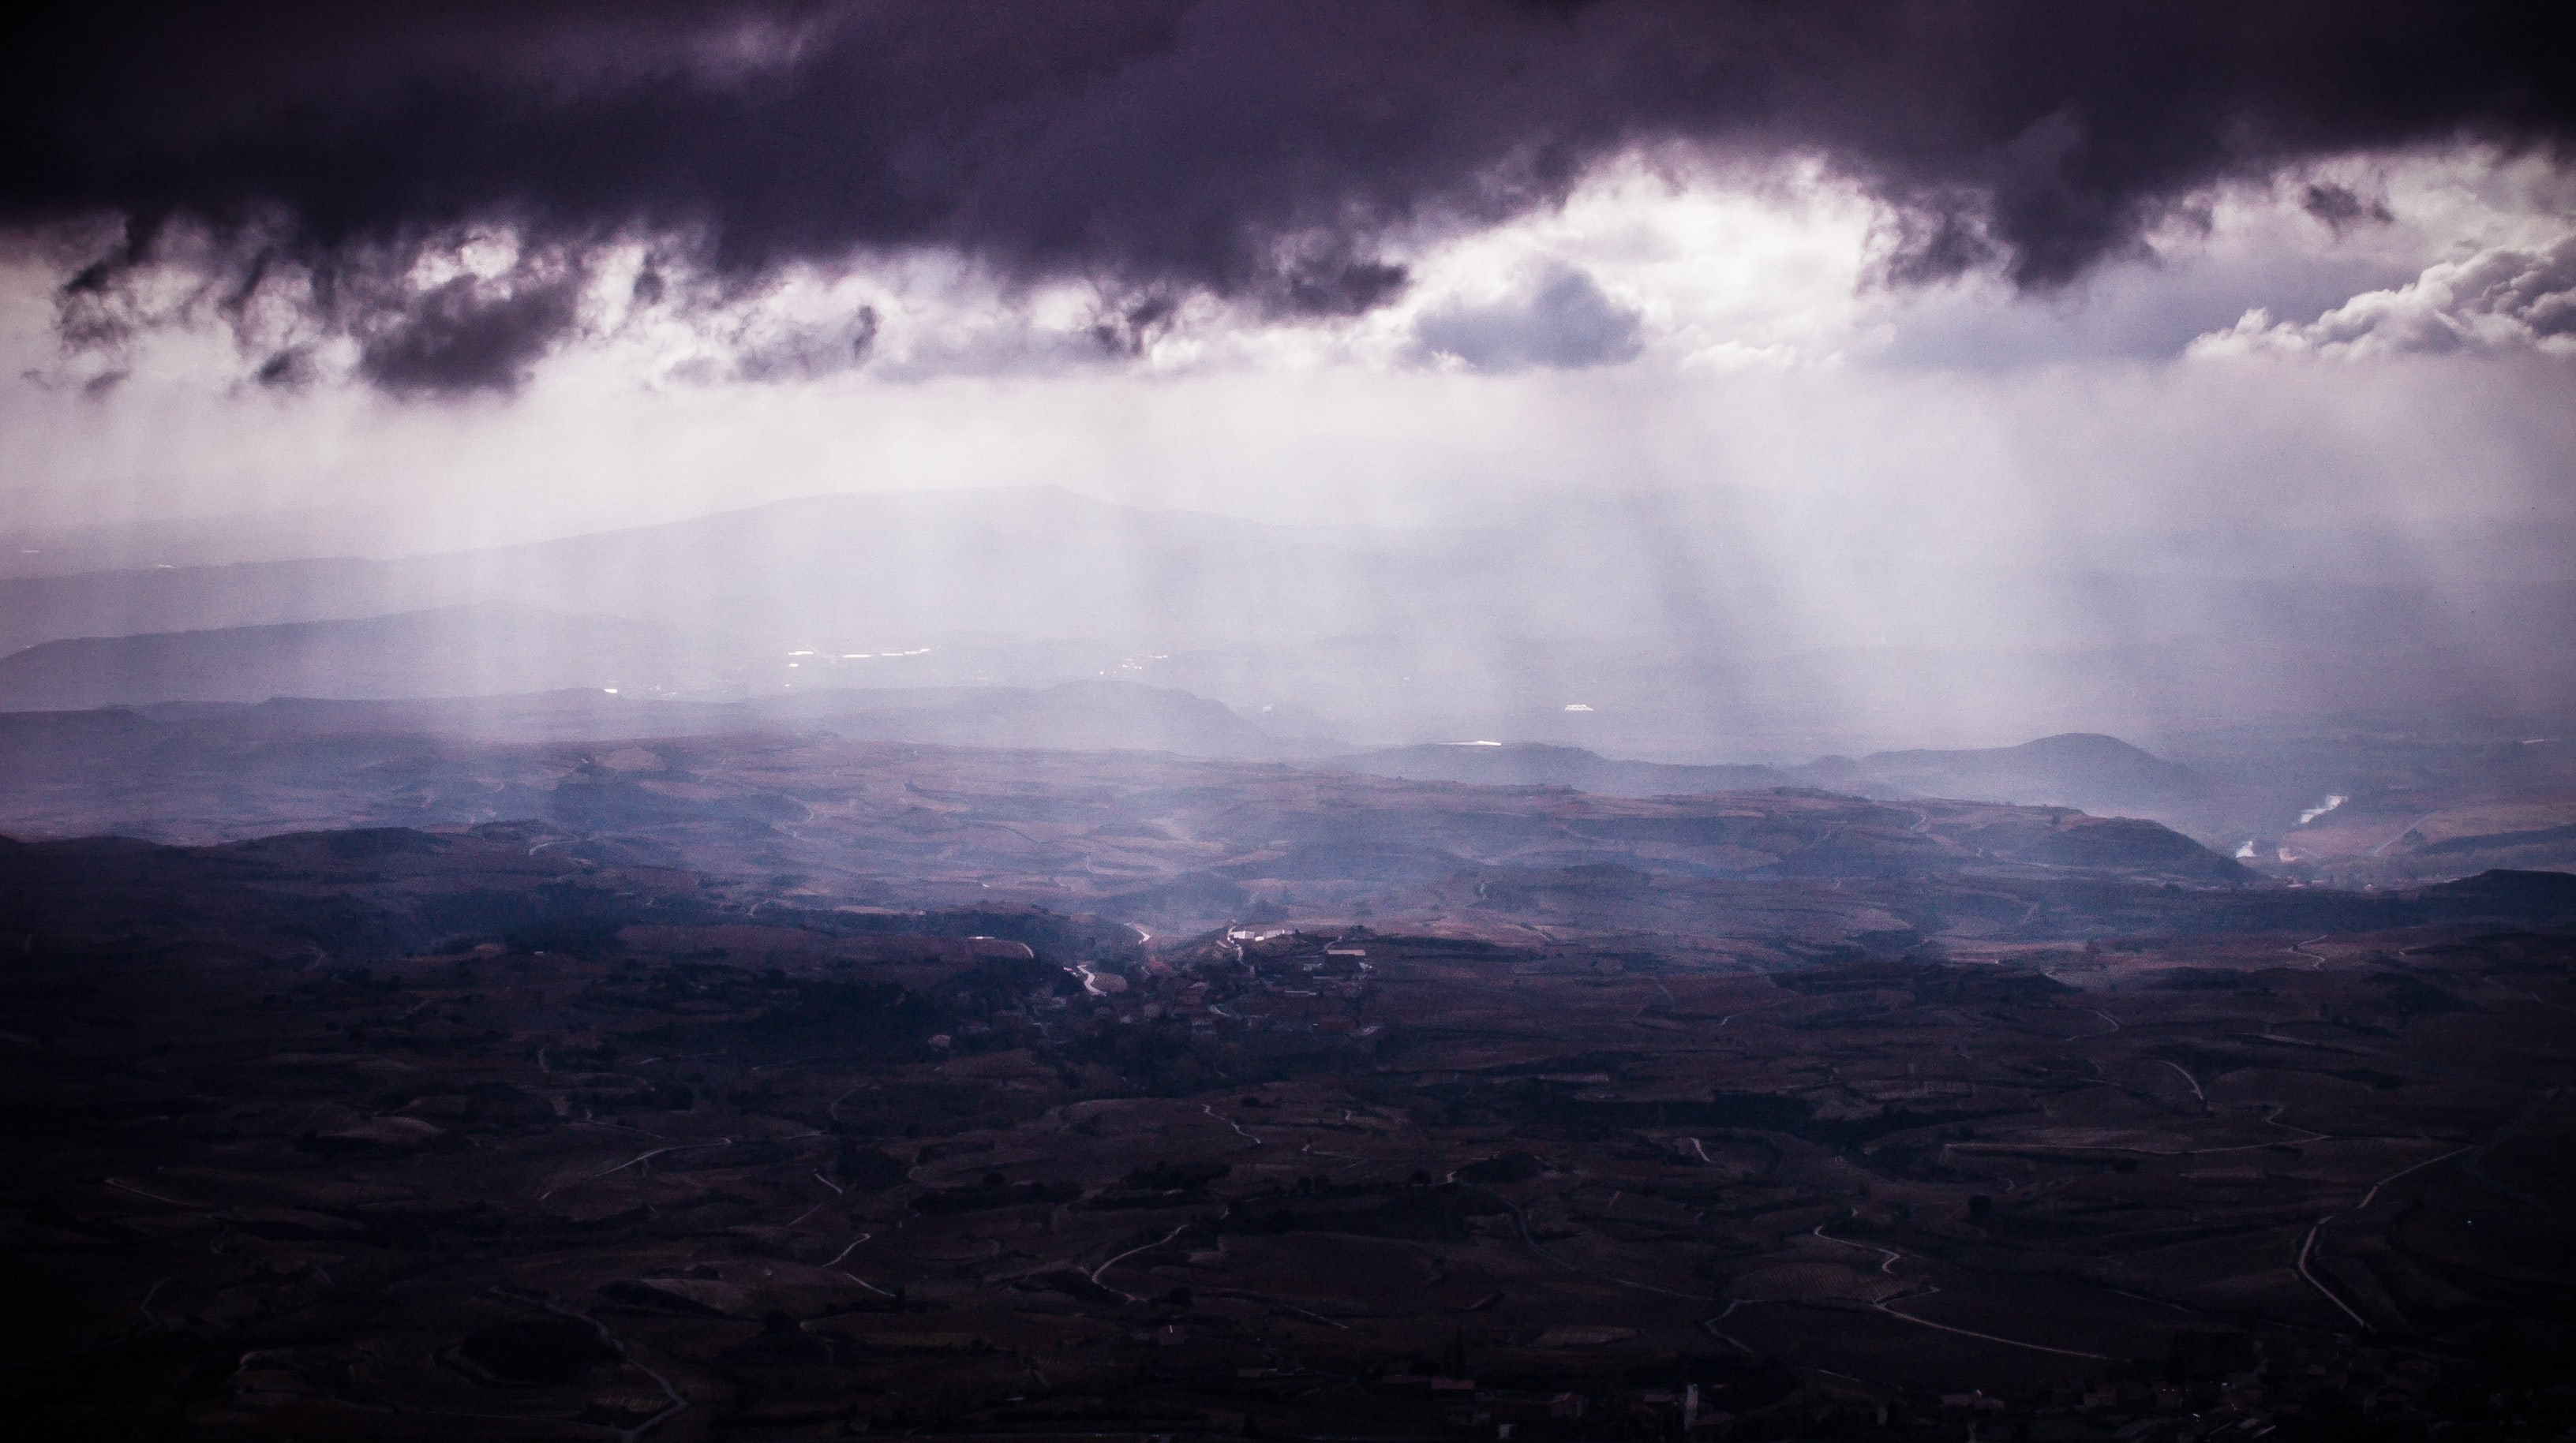 Sunbeams break through a layer of clouds over Rioja Alavesa, Laguardia, Spain, with rippling mountains stretching out.